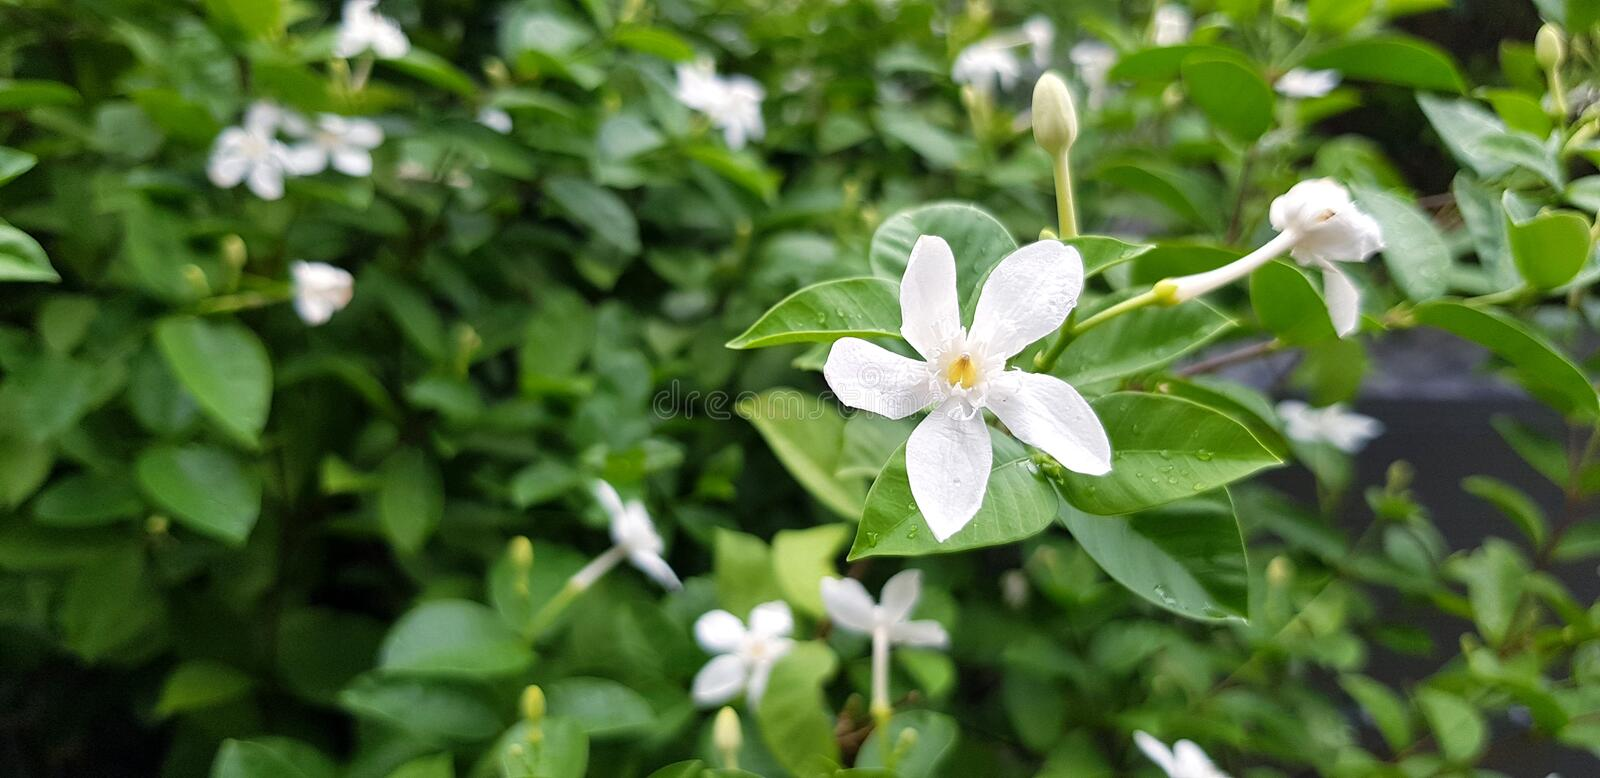 Fresh Jasmine flower and raindrop or water drops on green leaves blurred background stock images